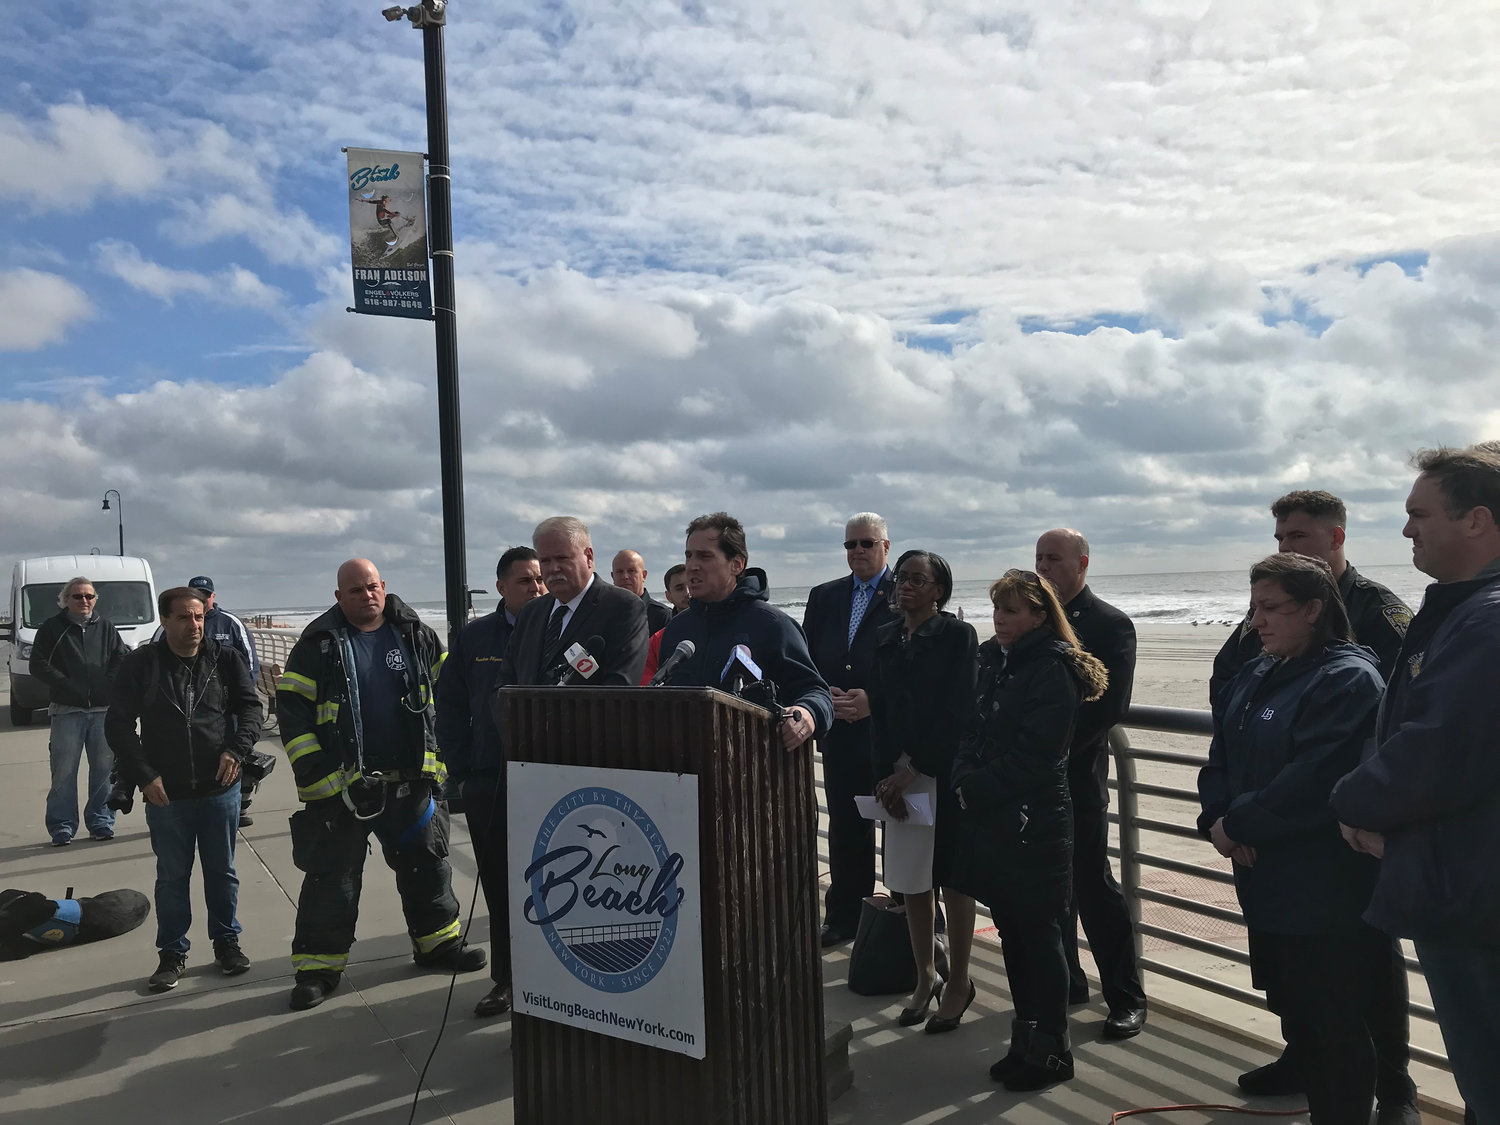 State Sen. Todd Kaminsky said that the community remains vulnerable to future storms and that many residents are still displaced.